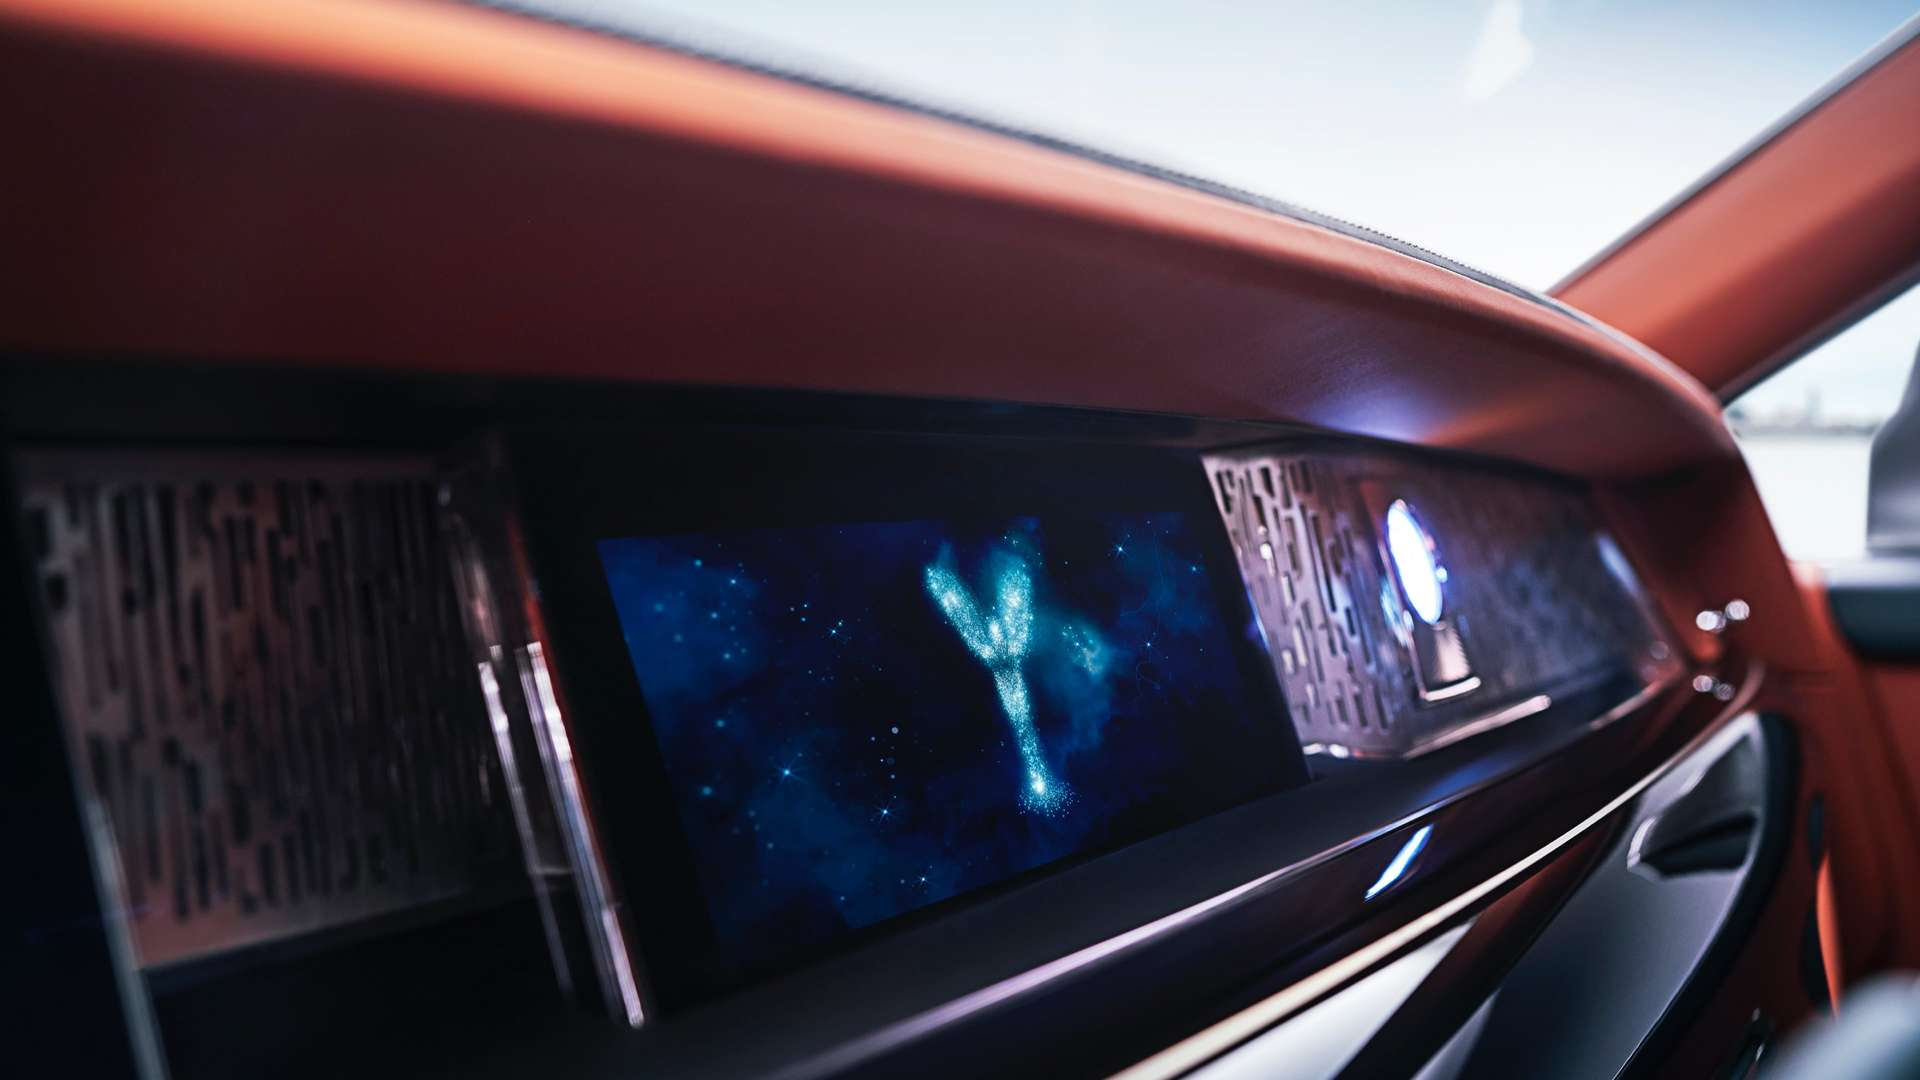 The dashboard of a Rolls-Royce Phantom.